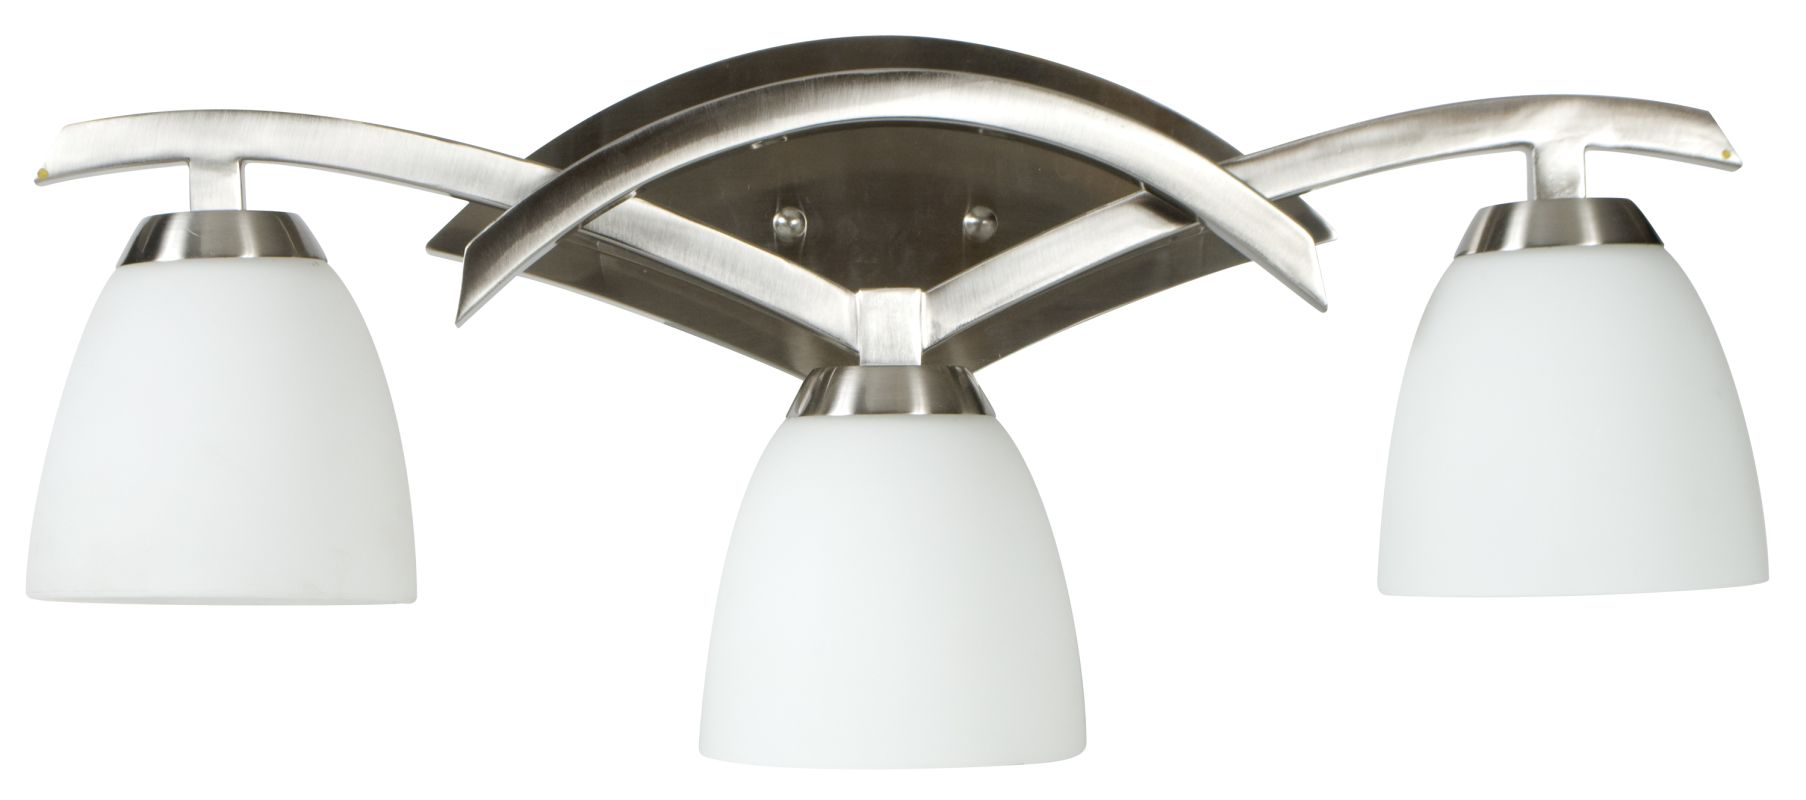 Craftmade 14024 Viewpoint 3 Light Bathroom Vanity Light - 24 Inches Sale $199.00 ITEM#: 1726227 MODEL# :14024BN3 UPC#: 647881105150 :